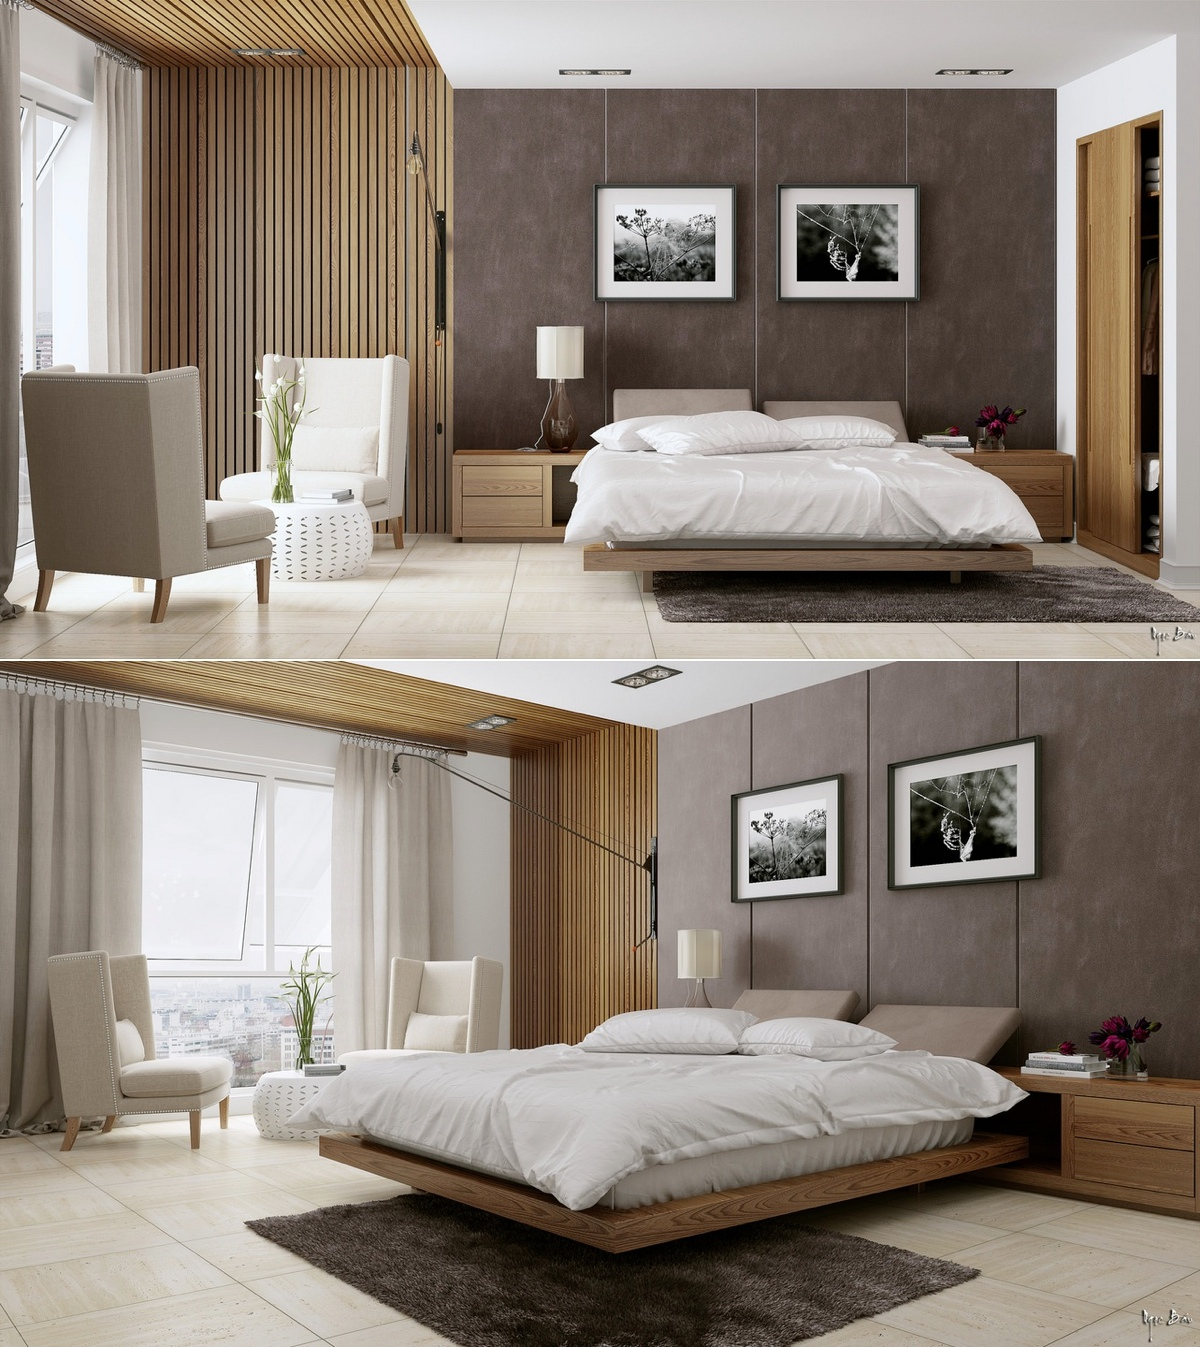 Bedroom Designs with Beautiful Creative Details